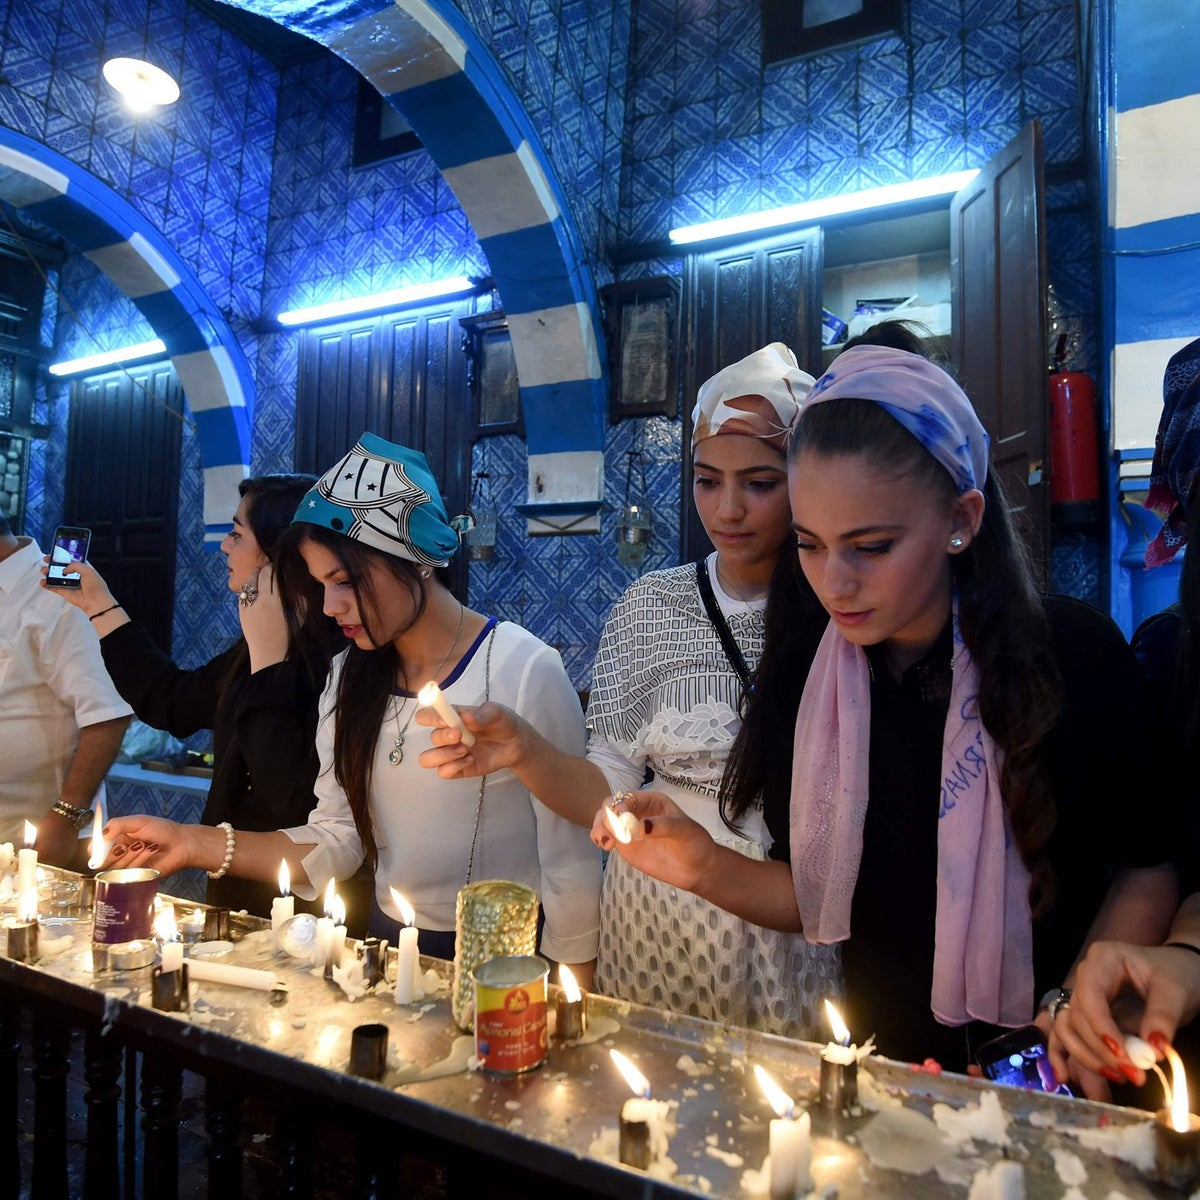 Israeli girls light candles at the the Ghriba synagogue in the Tunisian resort island of Djerba on May 12, 2017 during the first day of the annual Jewish pilgrimage to the synagogue on Tunisia's Mediterranean resort island of Djerba.